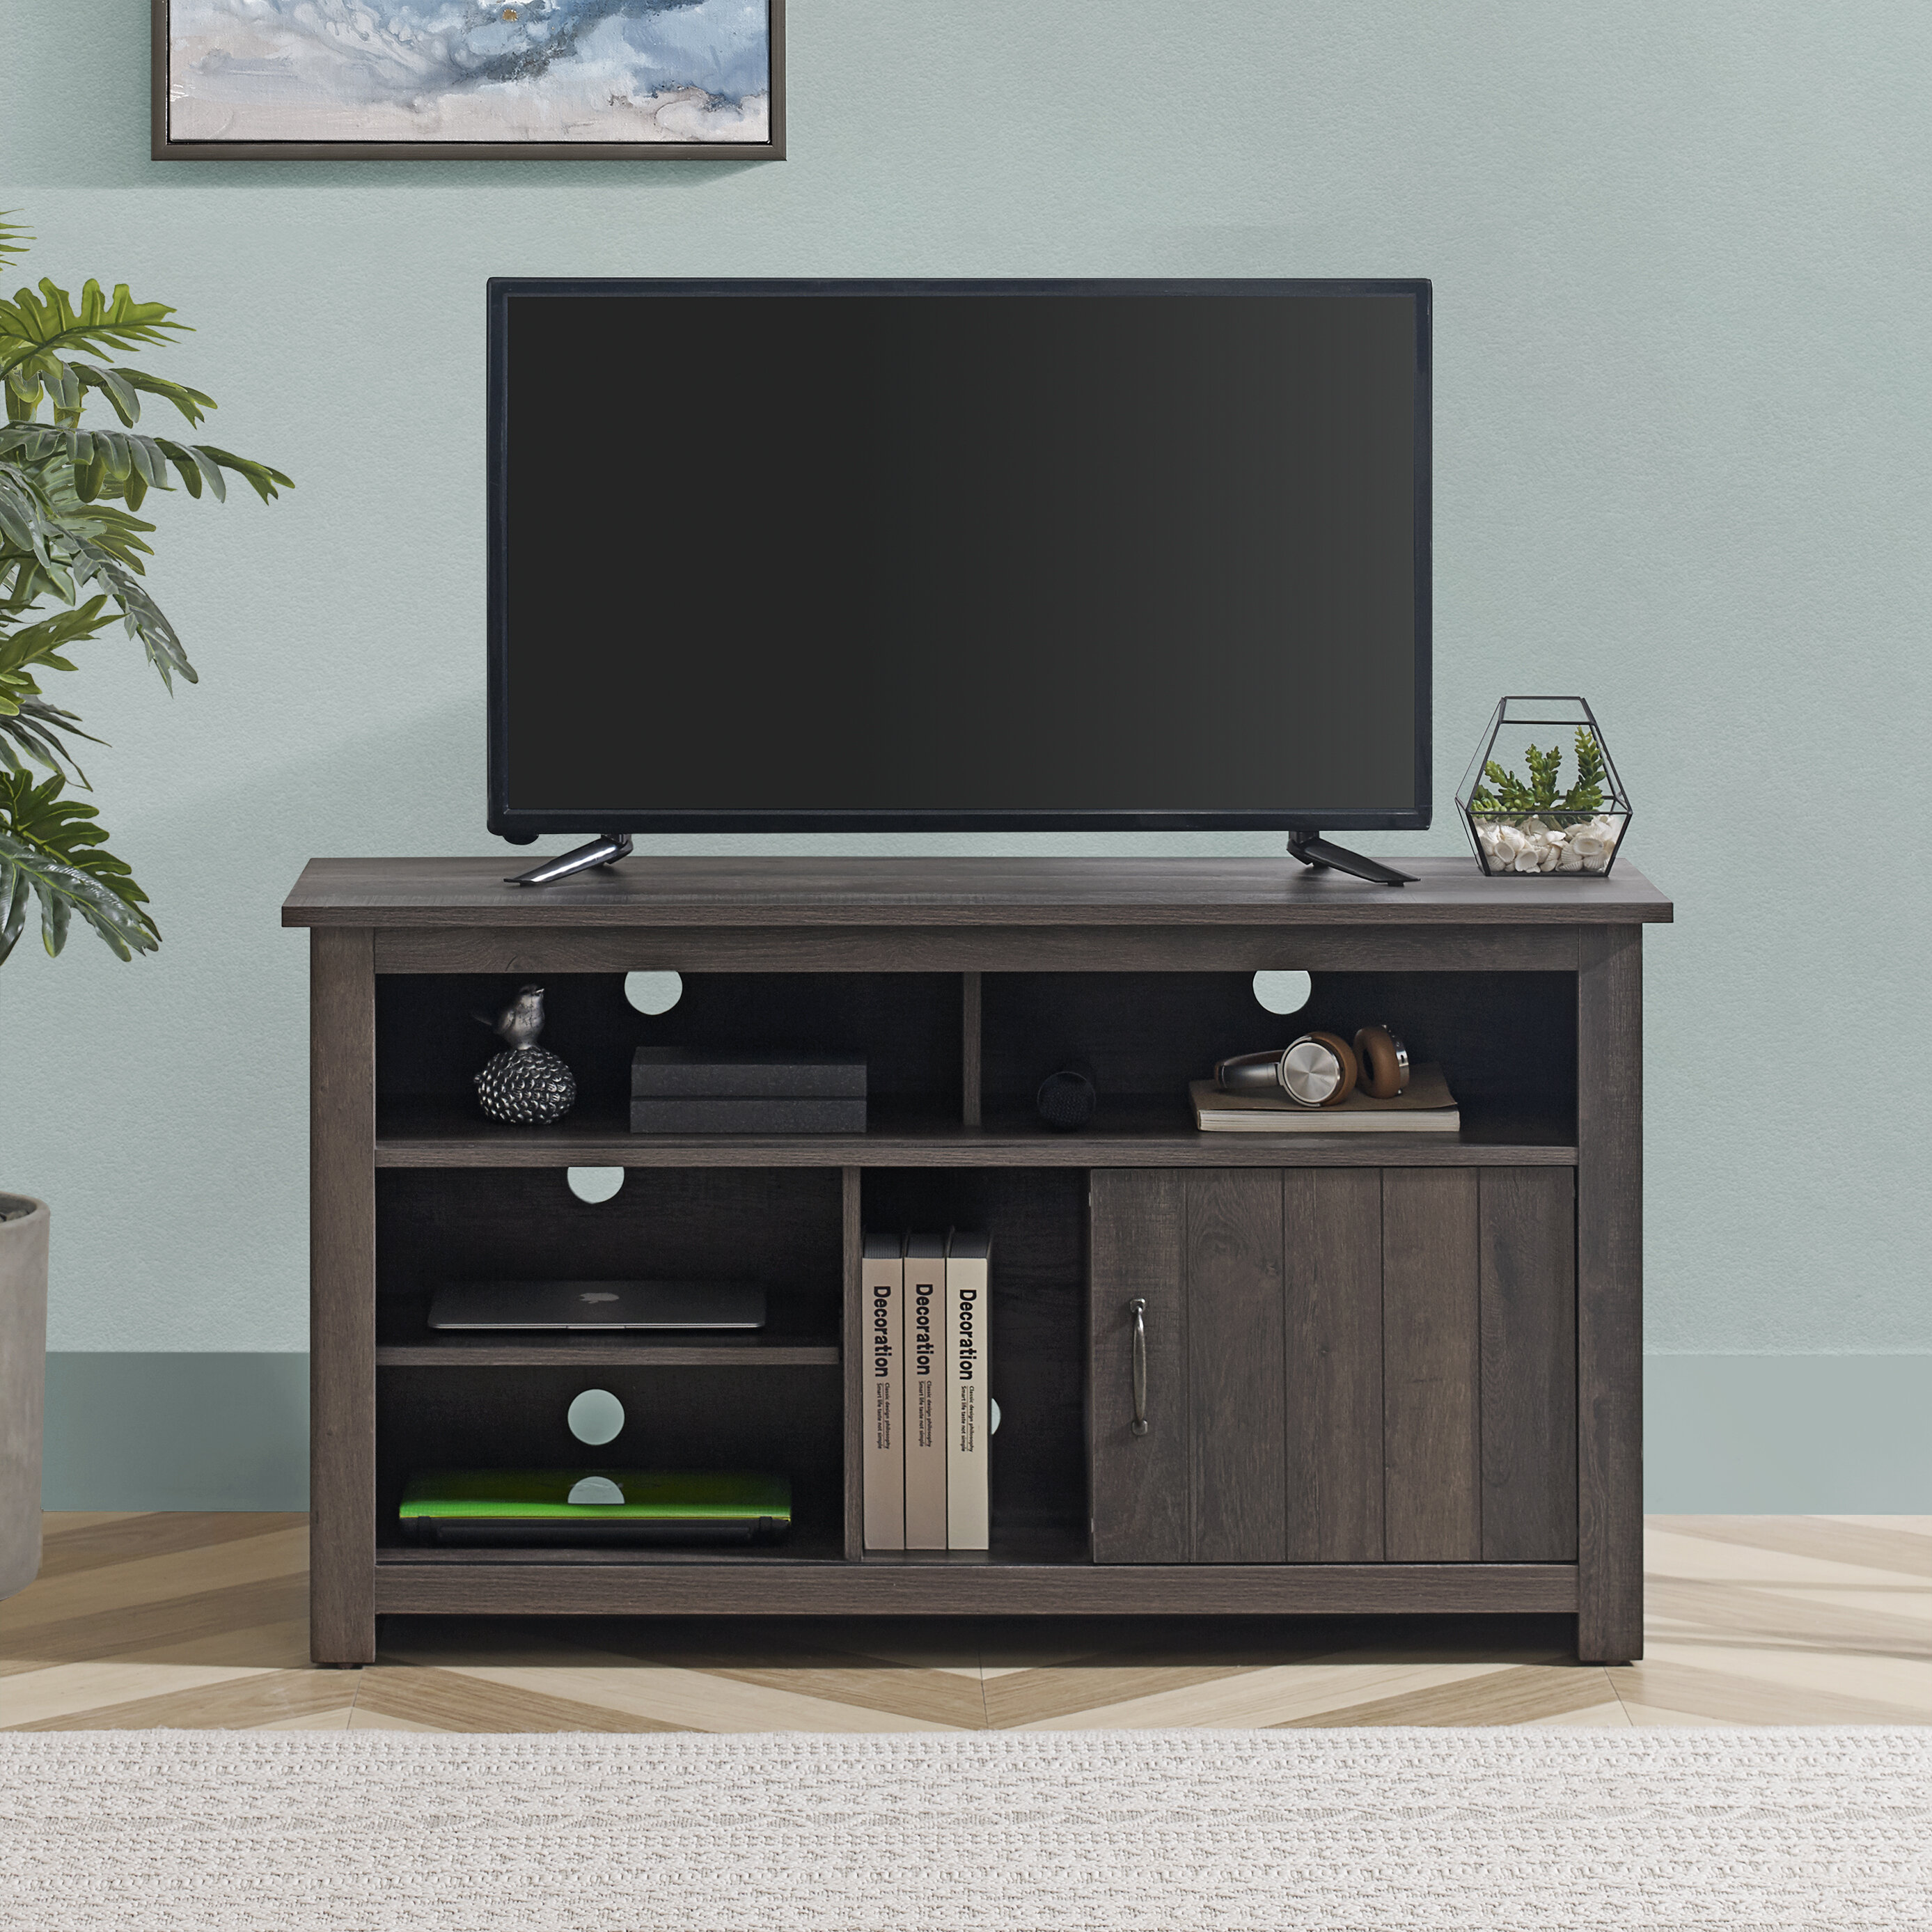 Gracie Oaks Geinbow Tv Stand For Tvs Up To 50 Wayfair